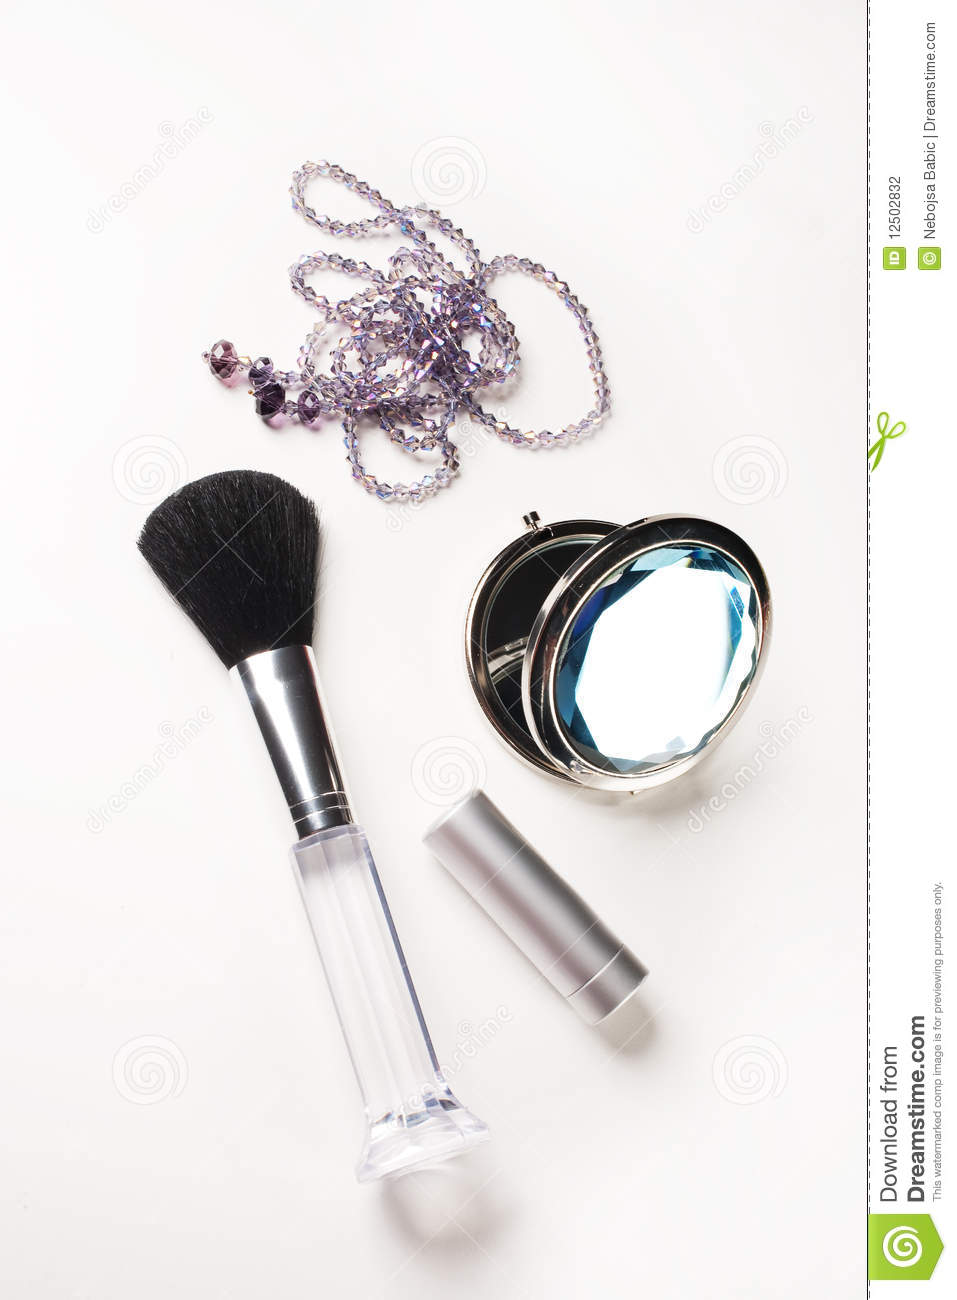 Beauty And Fashion Accessories Stock Photography Image 12502832